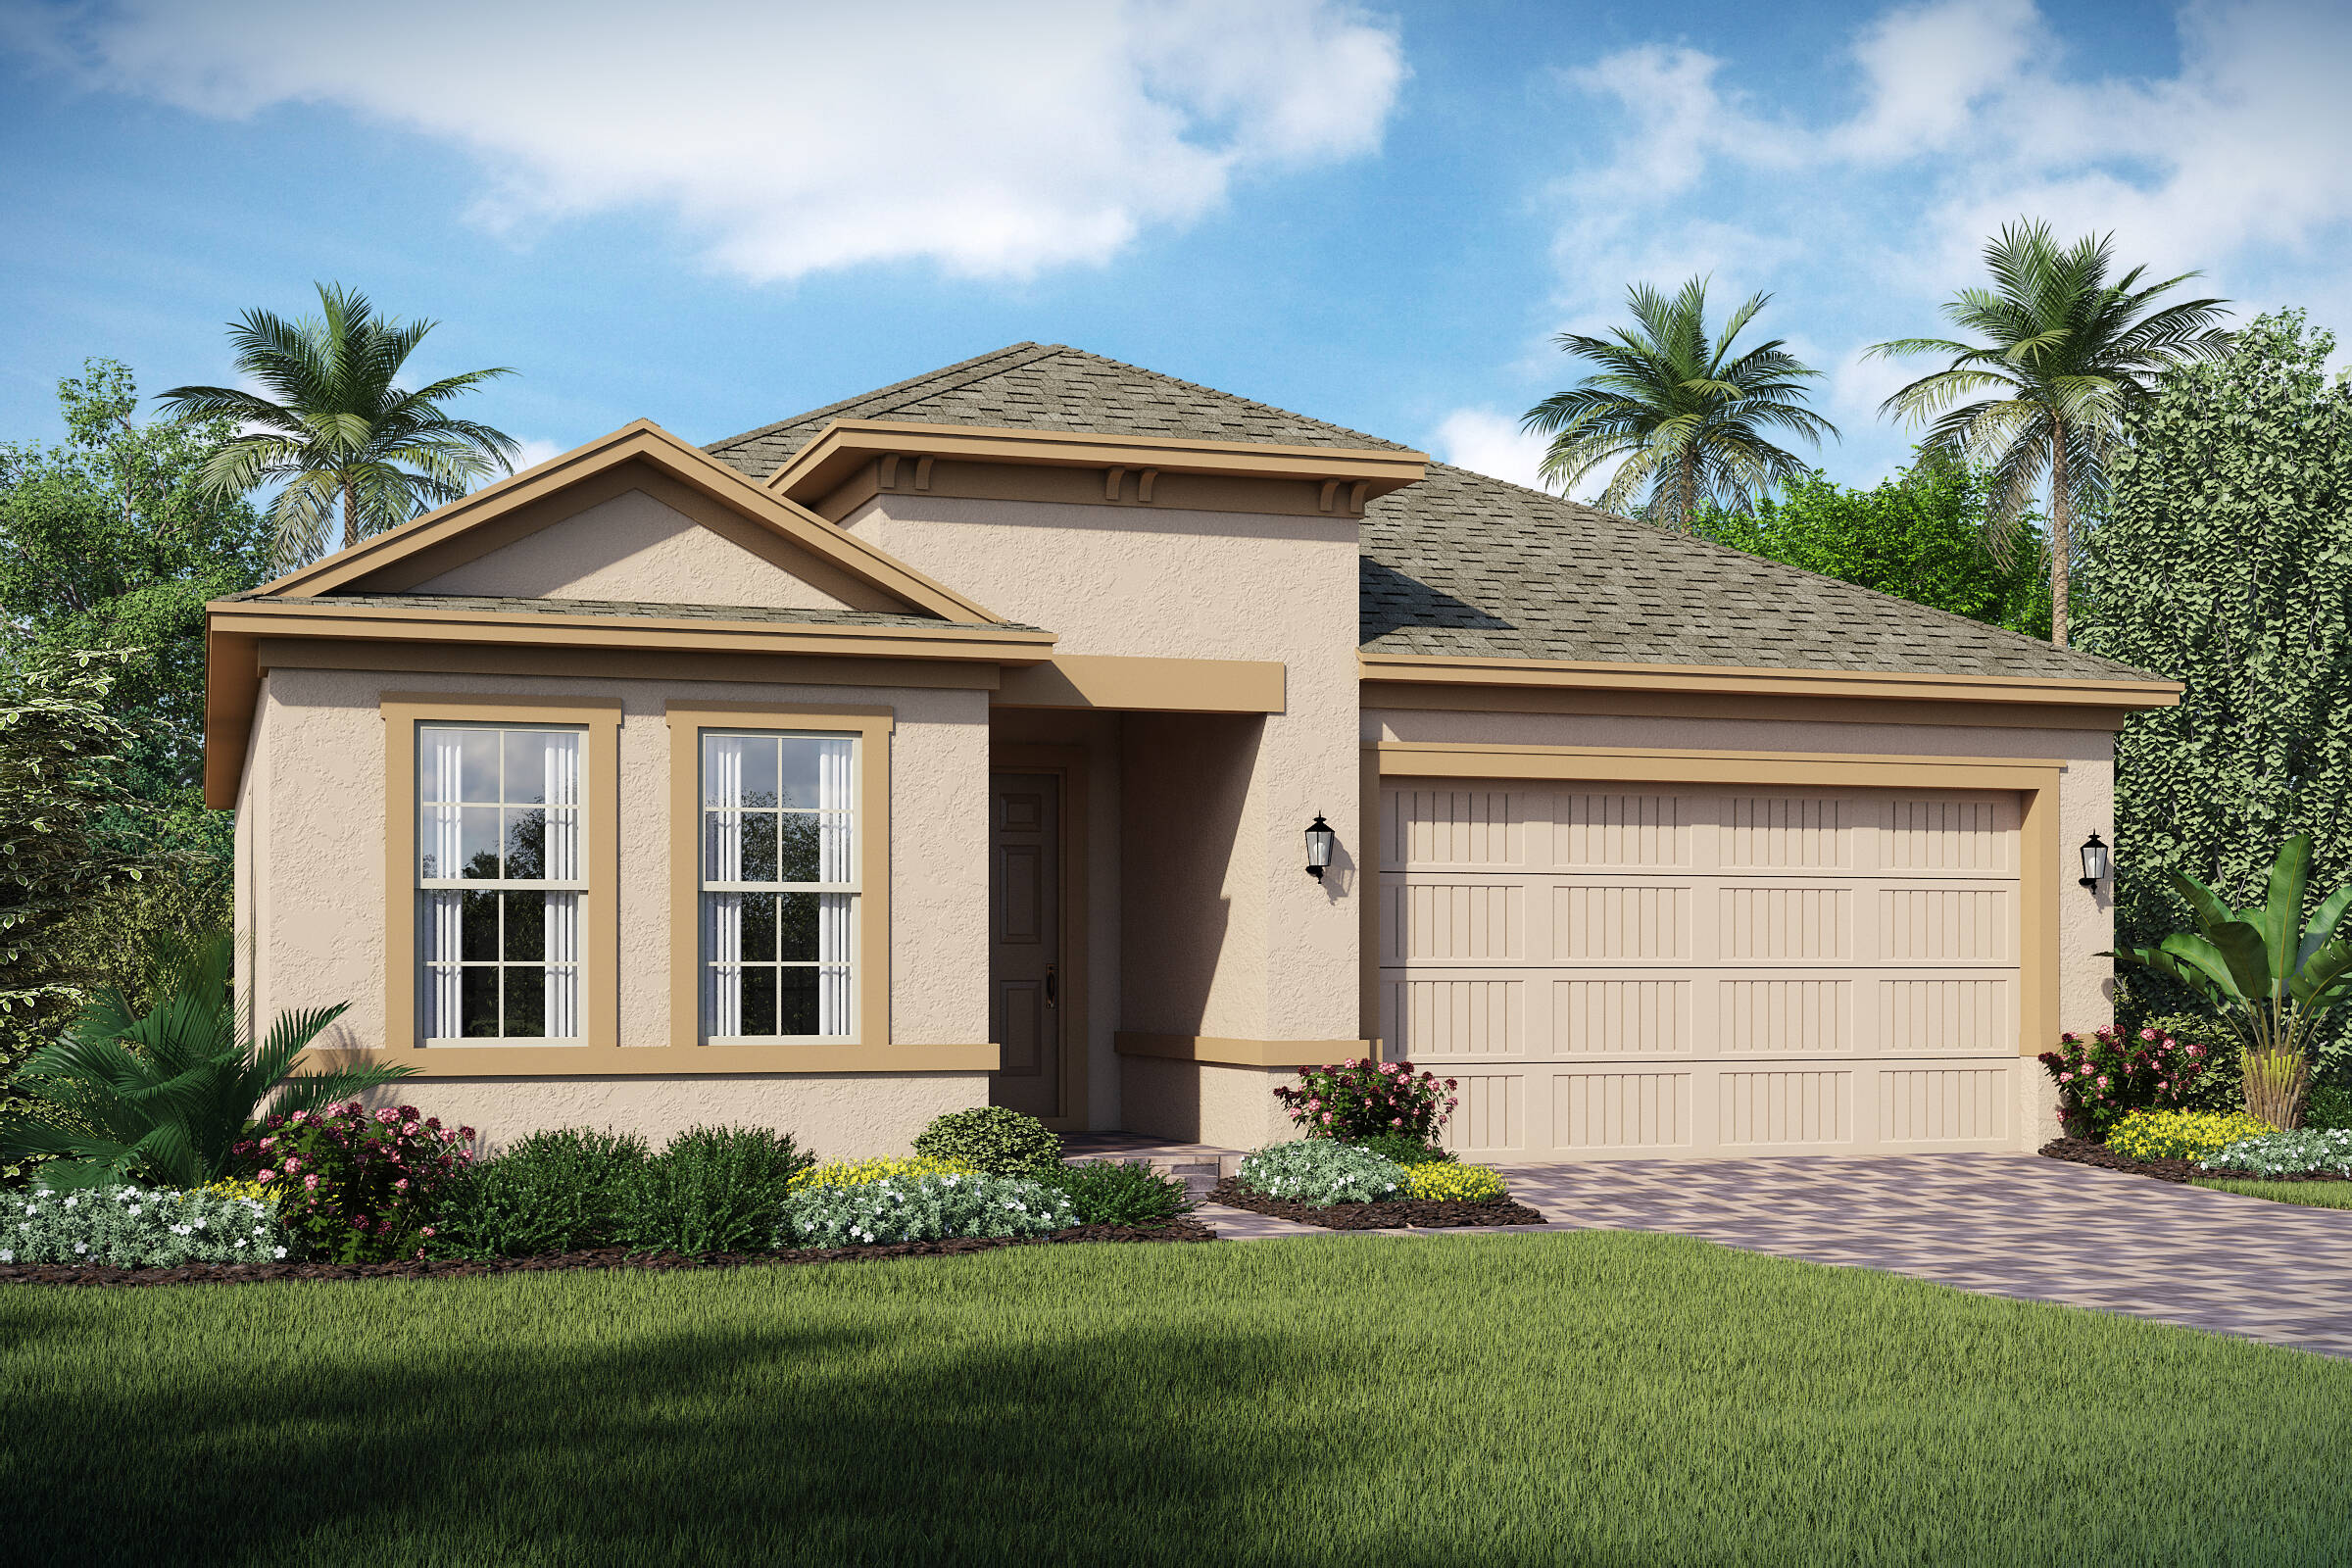 San Andres-A-elev new homes in orlando florida